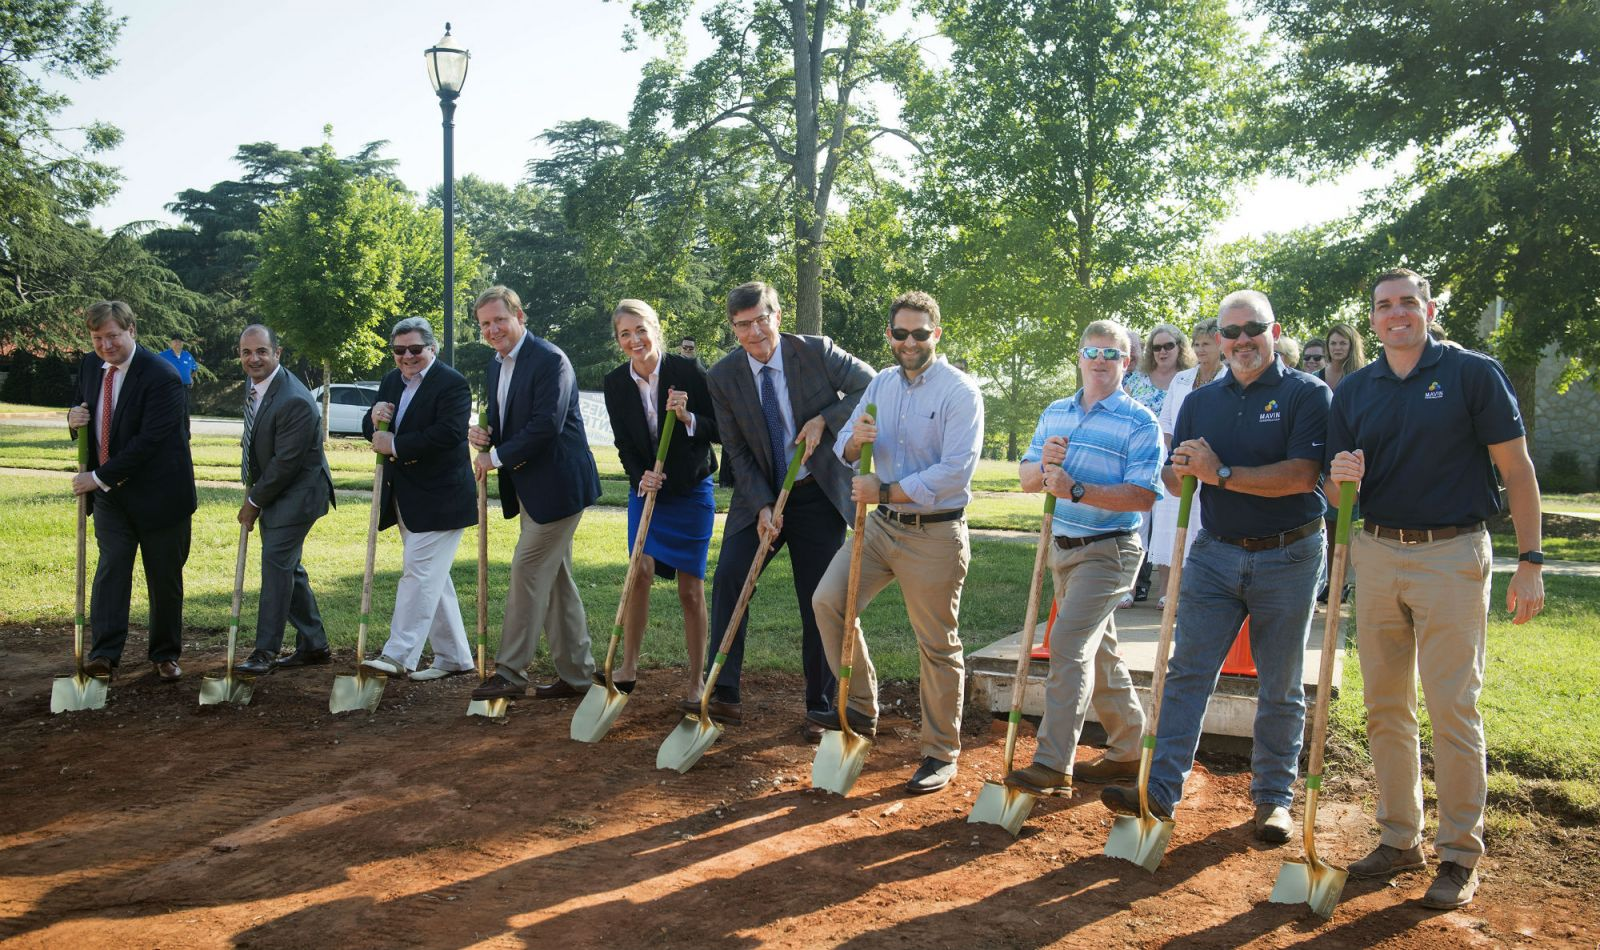 Spartanburg Methodist College representatives break ground for a new fitness center. (Photo/Provided)